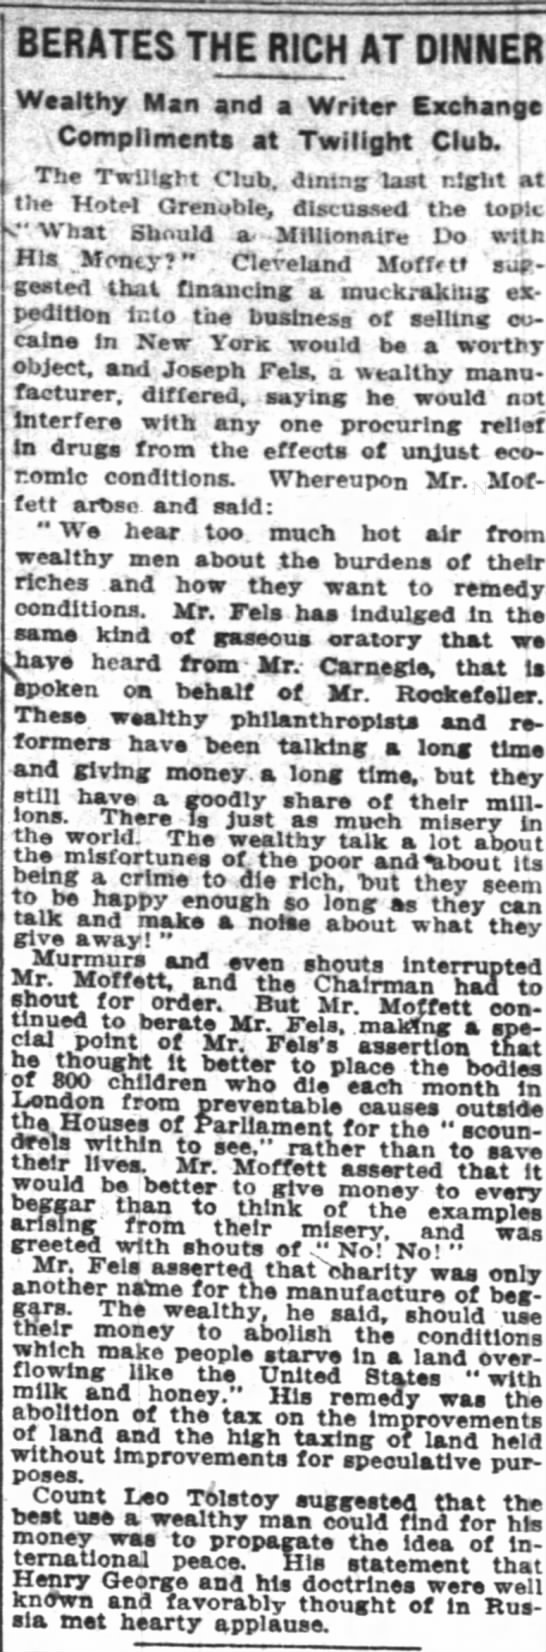 The New York Times (New York, New York) 4 April 1911  Page 3 -